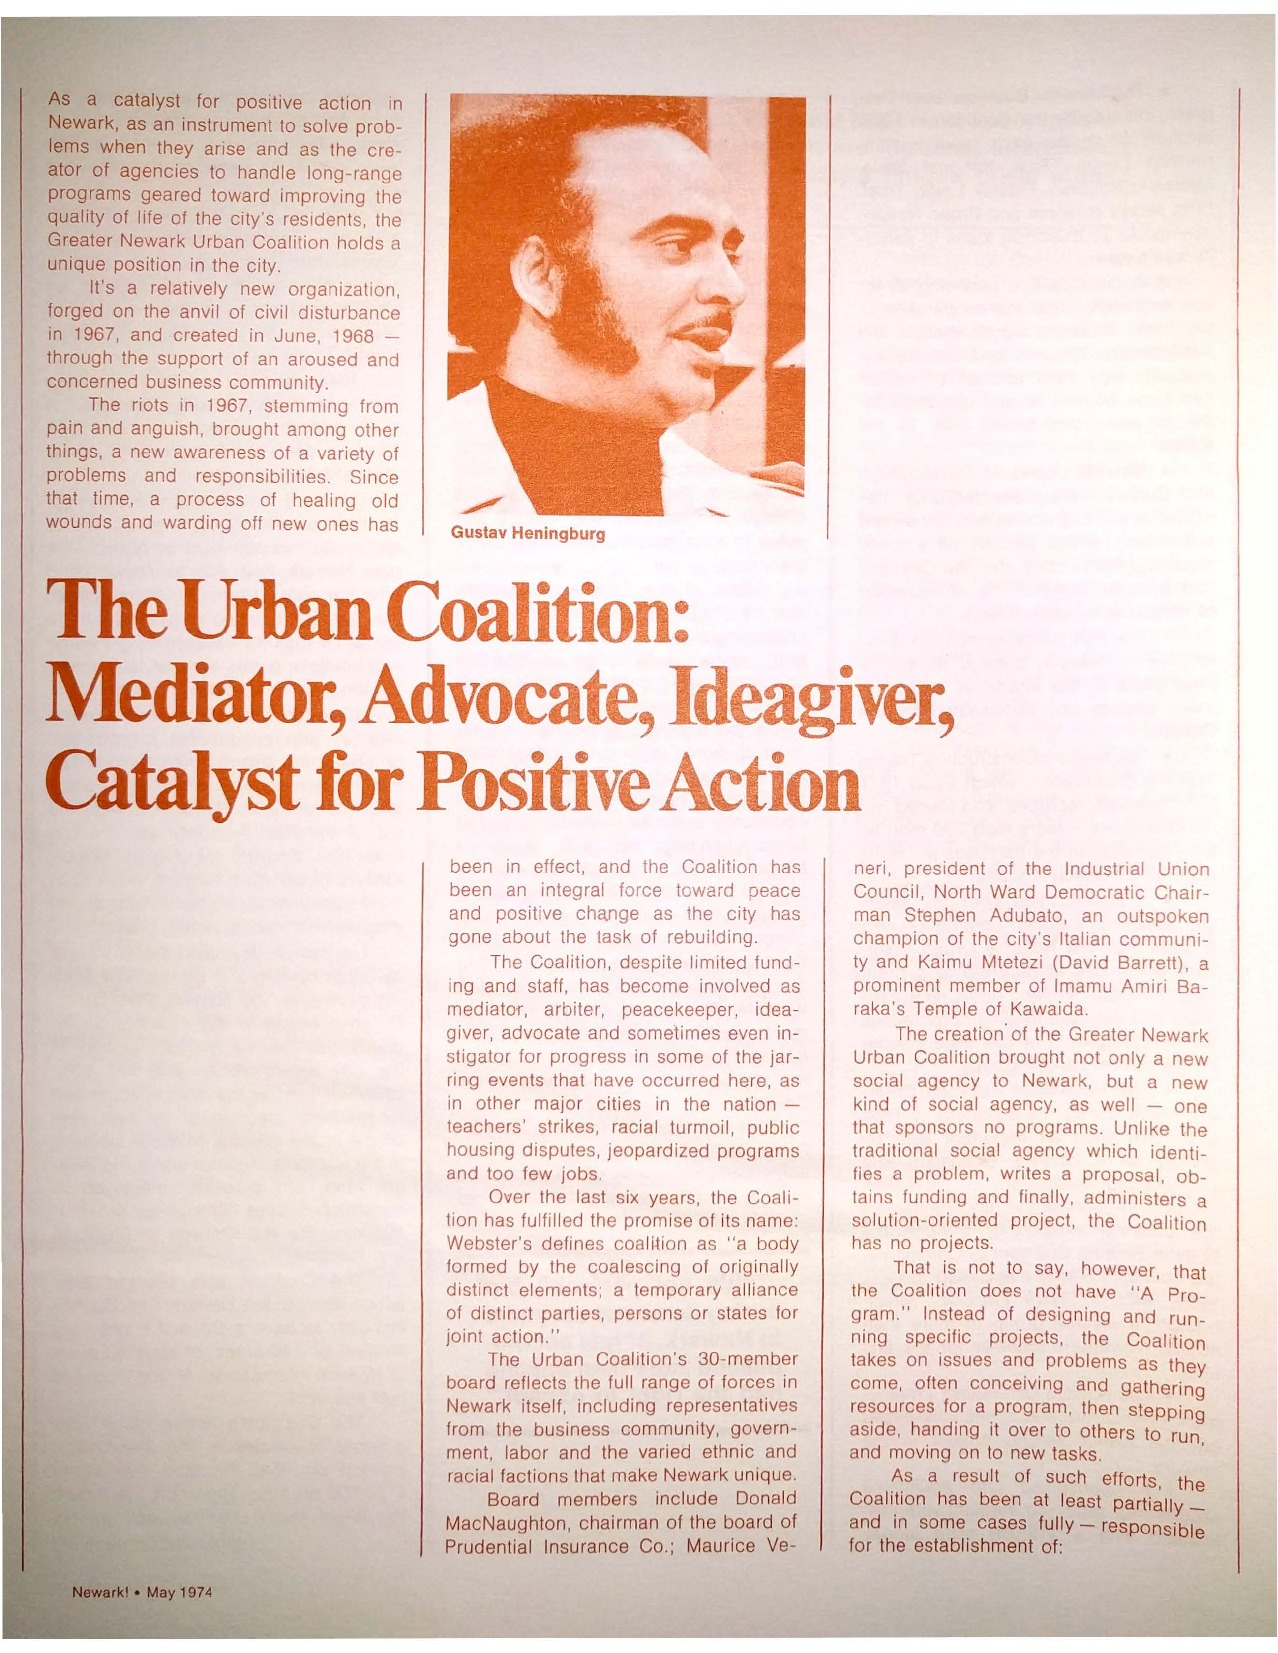 The Urban Coalition (1974)